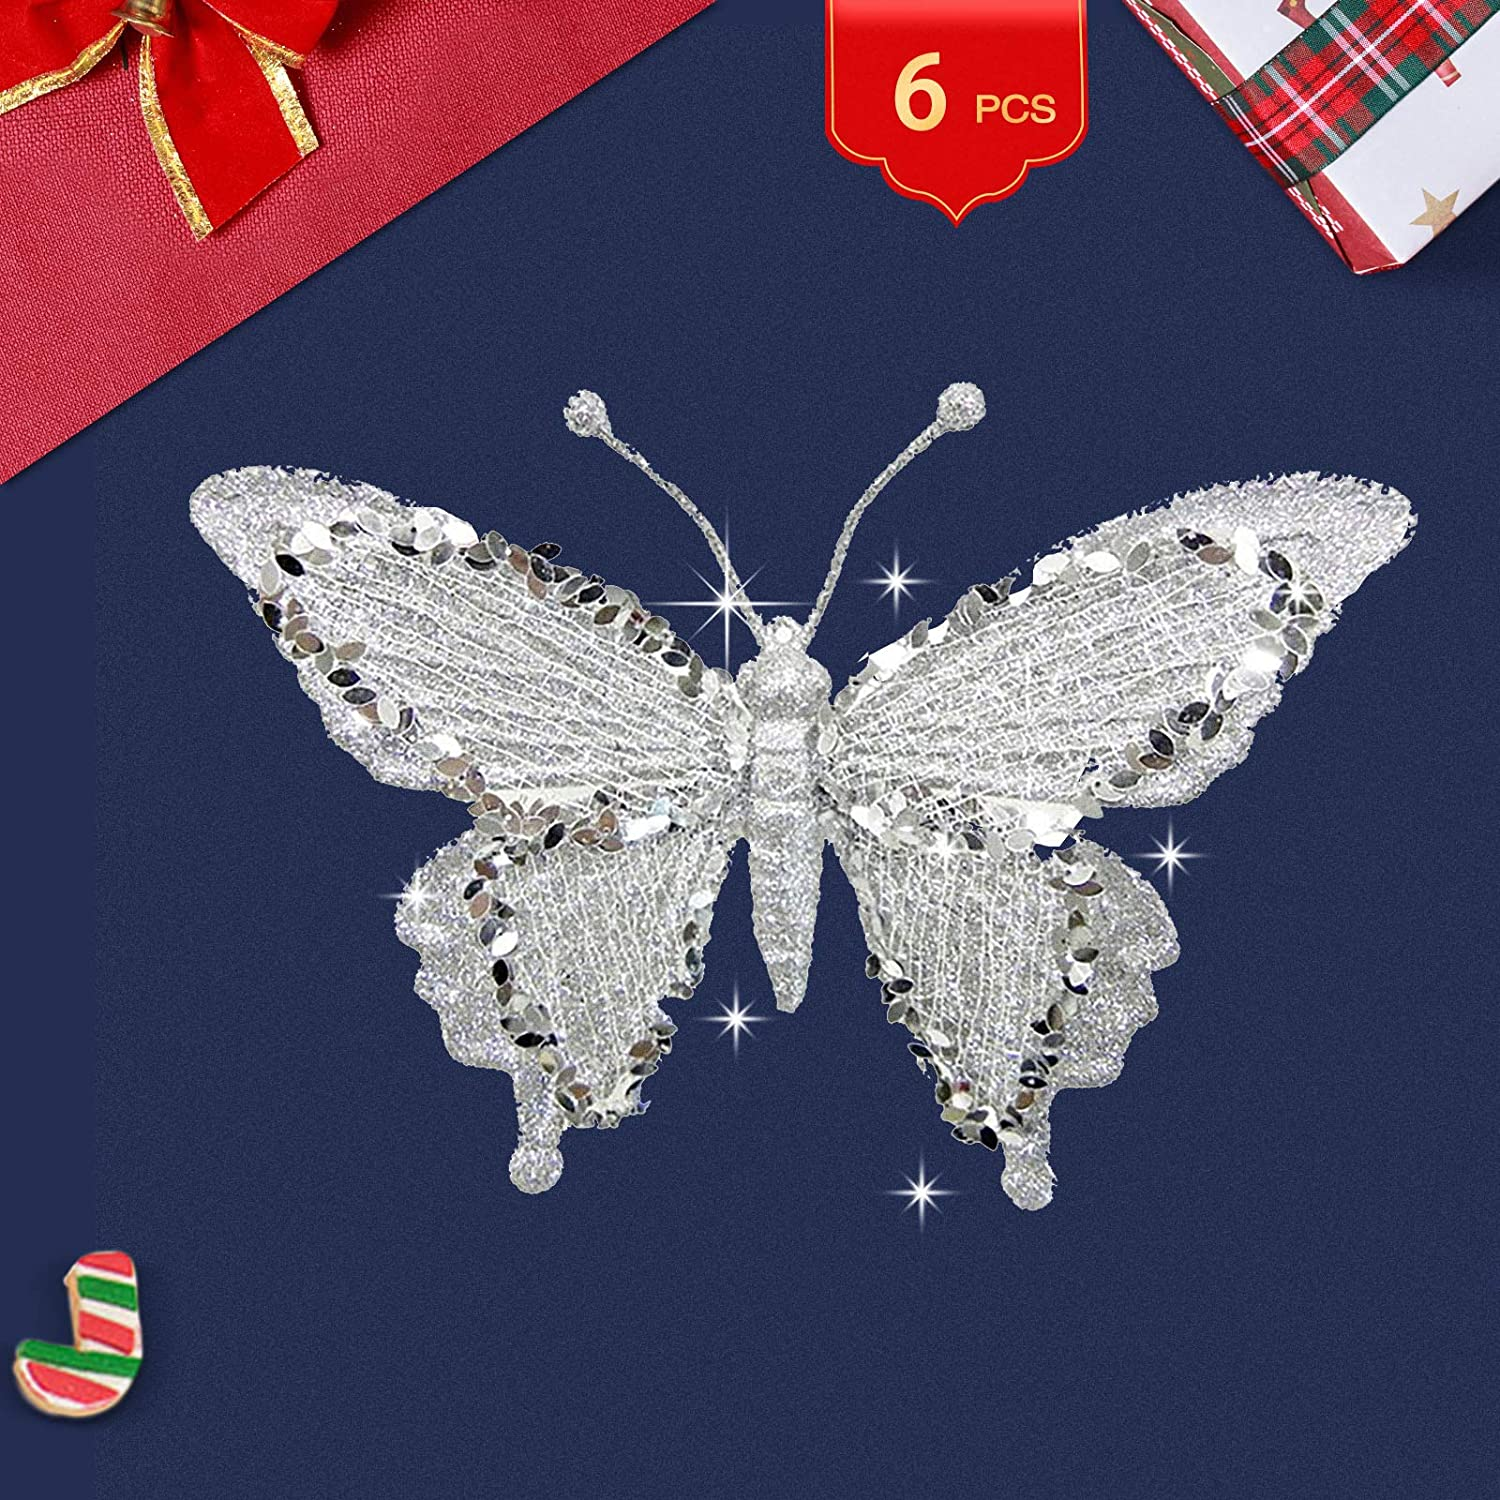 Silver Butterfly Ornaments for Christmas Tree Butterfly Ornament Glittered Butterfly Decor Butterfly Decorations Party Christmas Butterfly Ornaments for Wedding Home Christmas Wreath (6 Packs